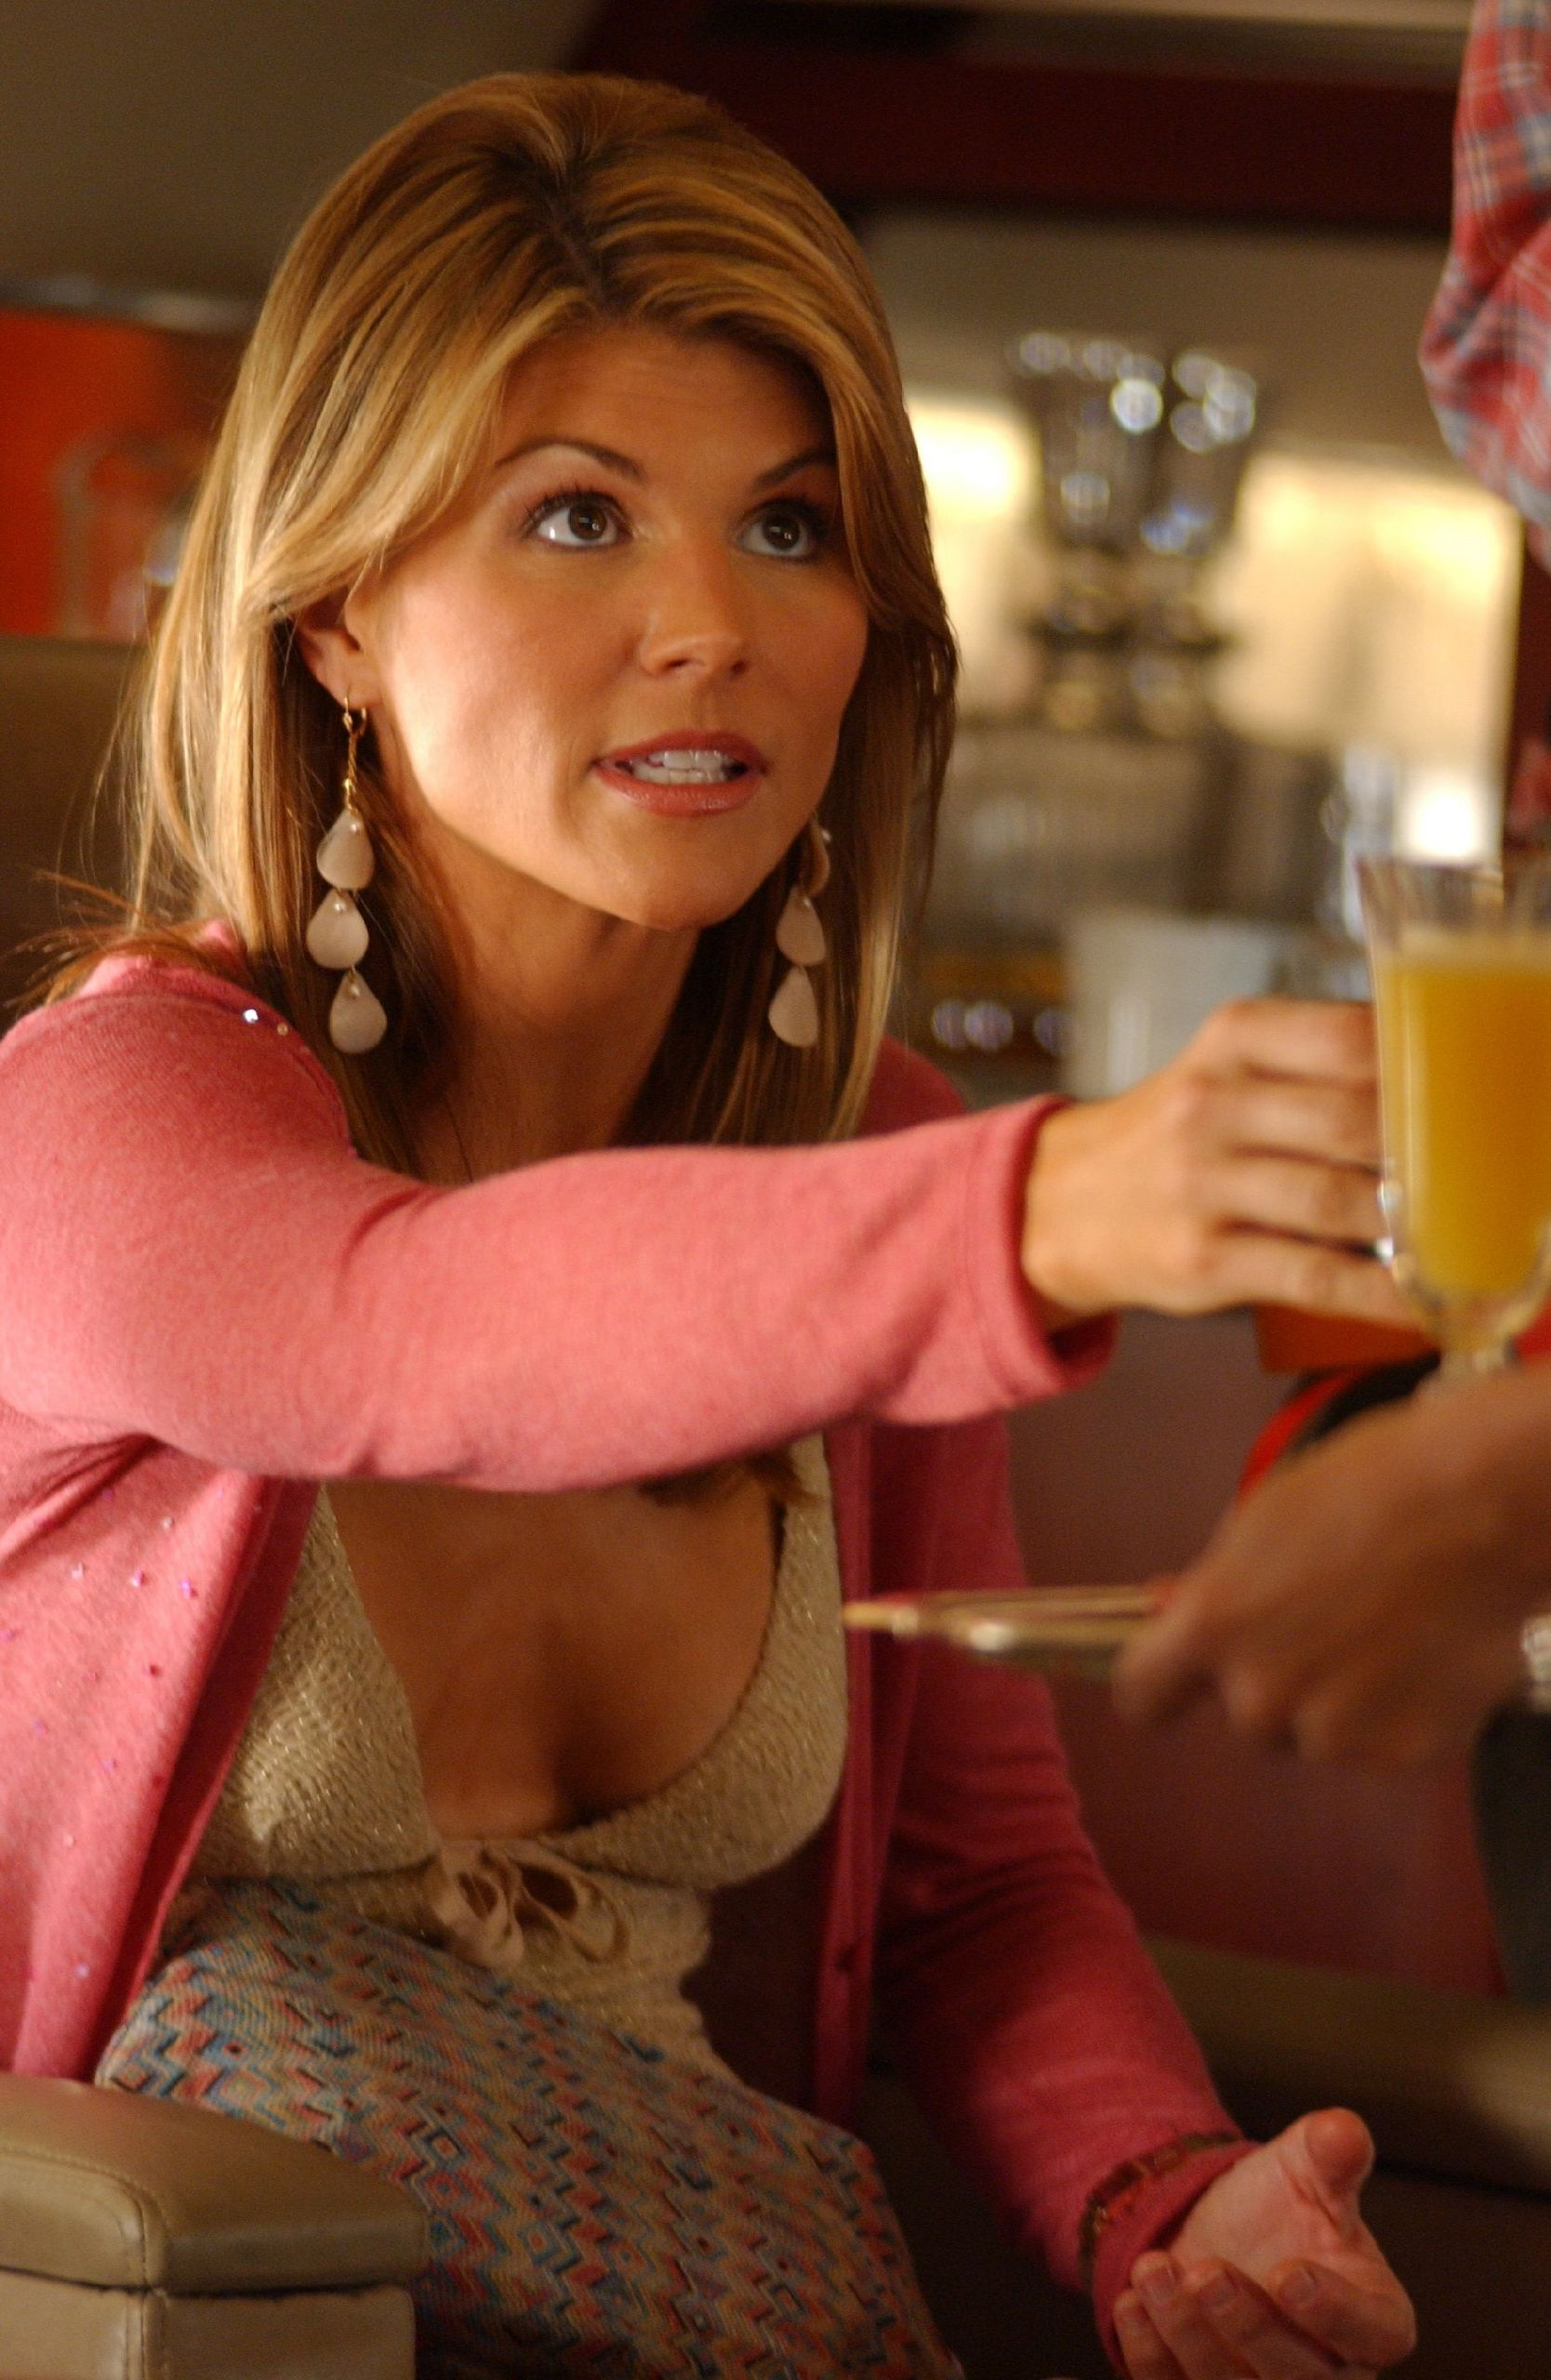 from Major lori loughlin leaked images